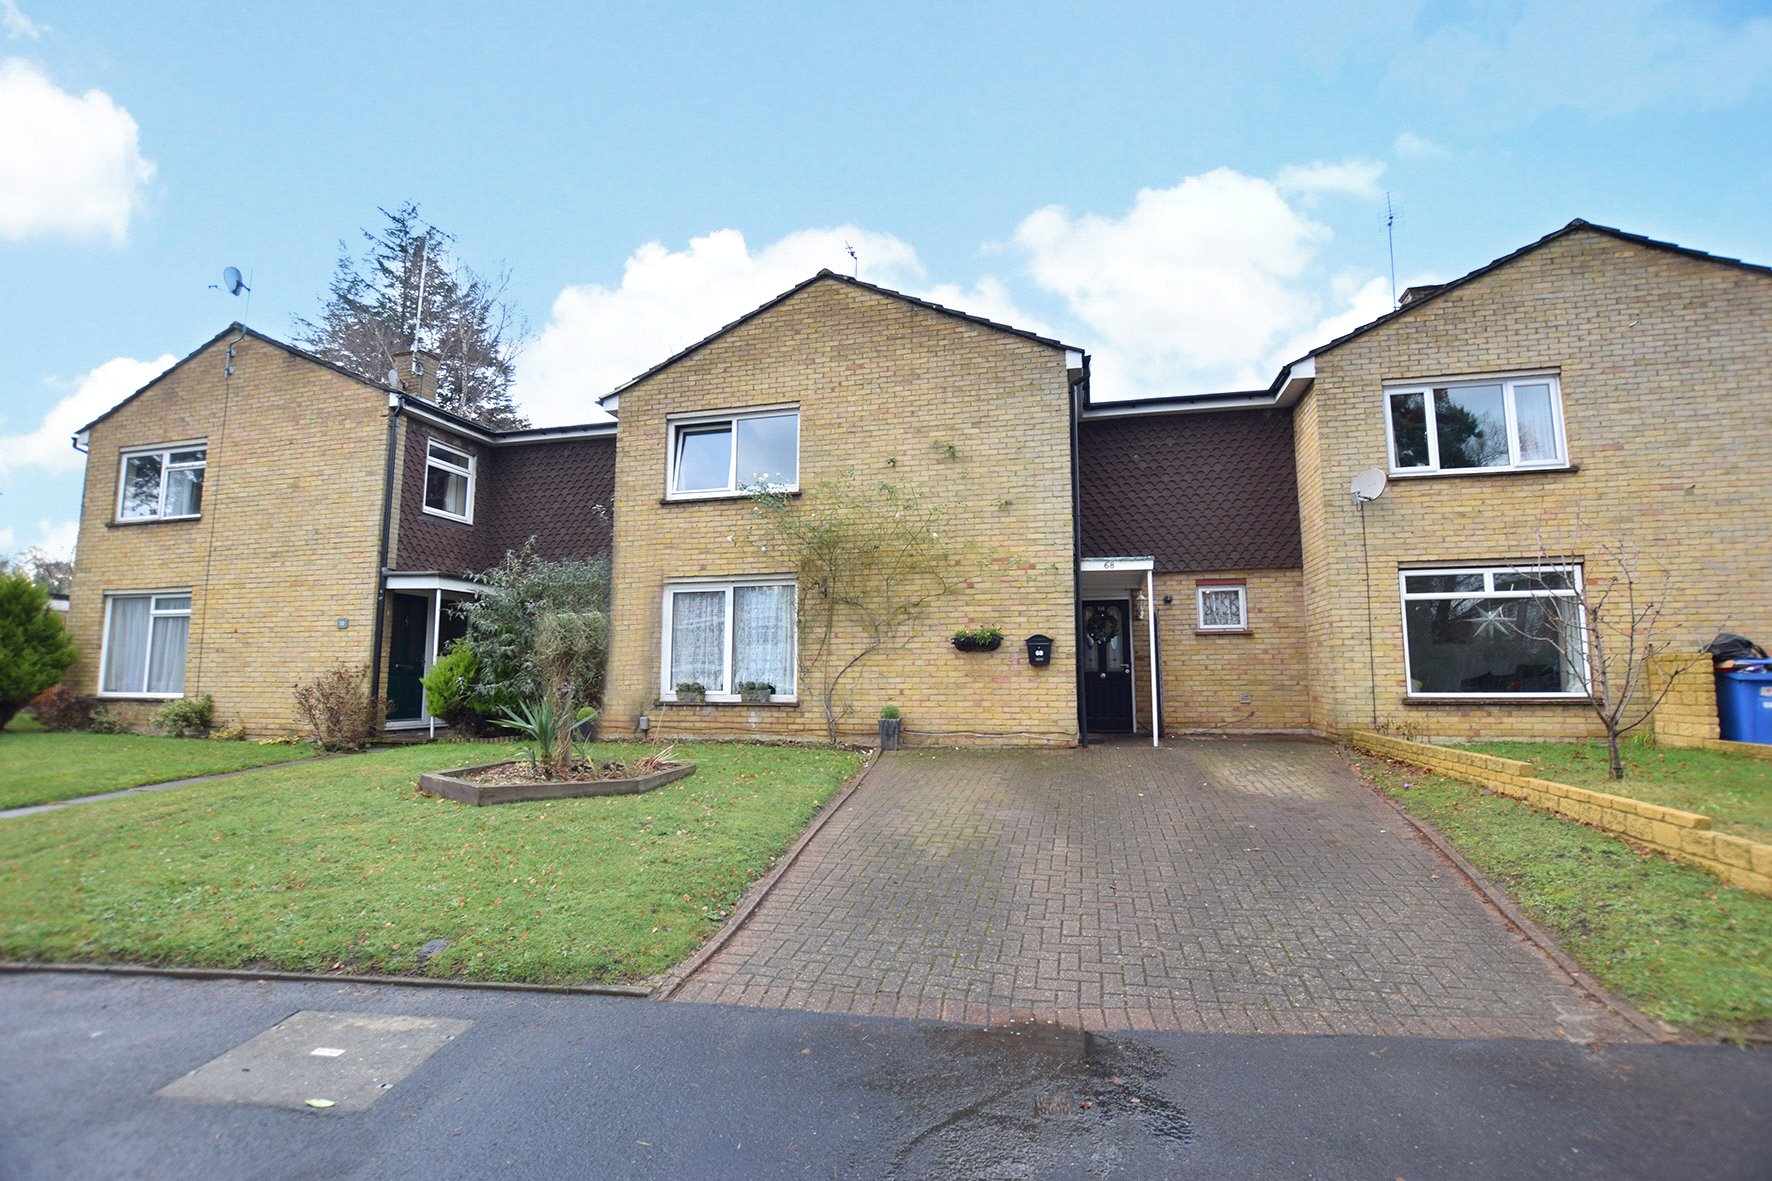 4 Bedrooms Terraced House for sale in Uffington Drive, Bracknell, Berkshire, RG12